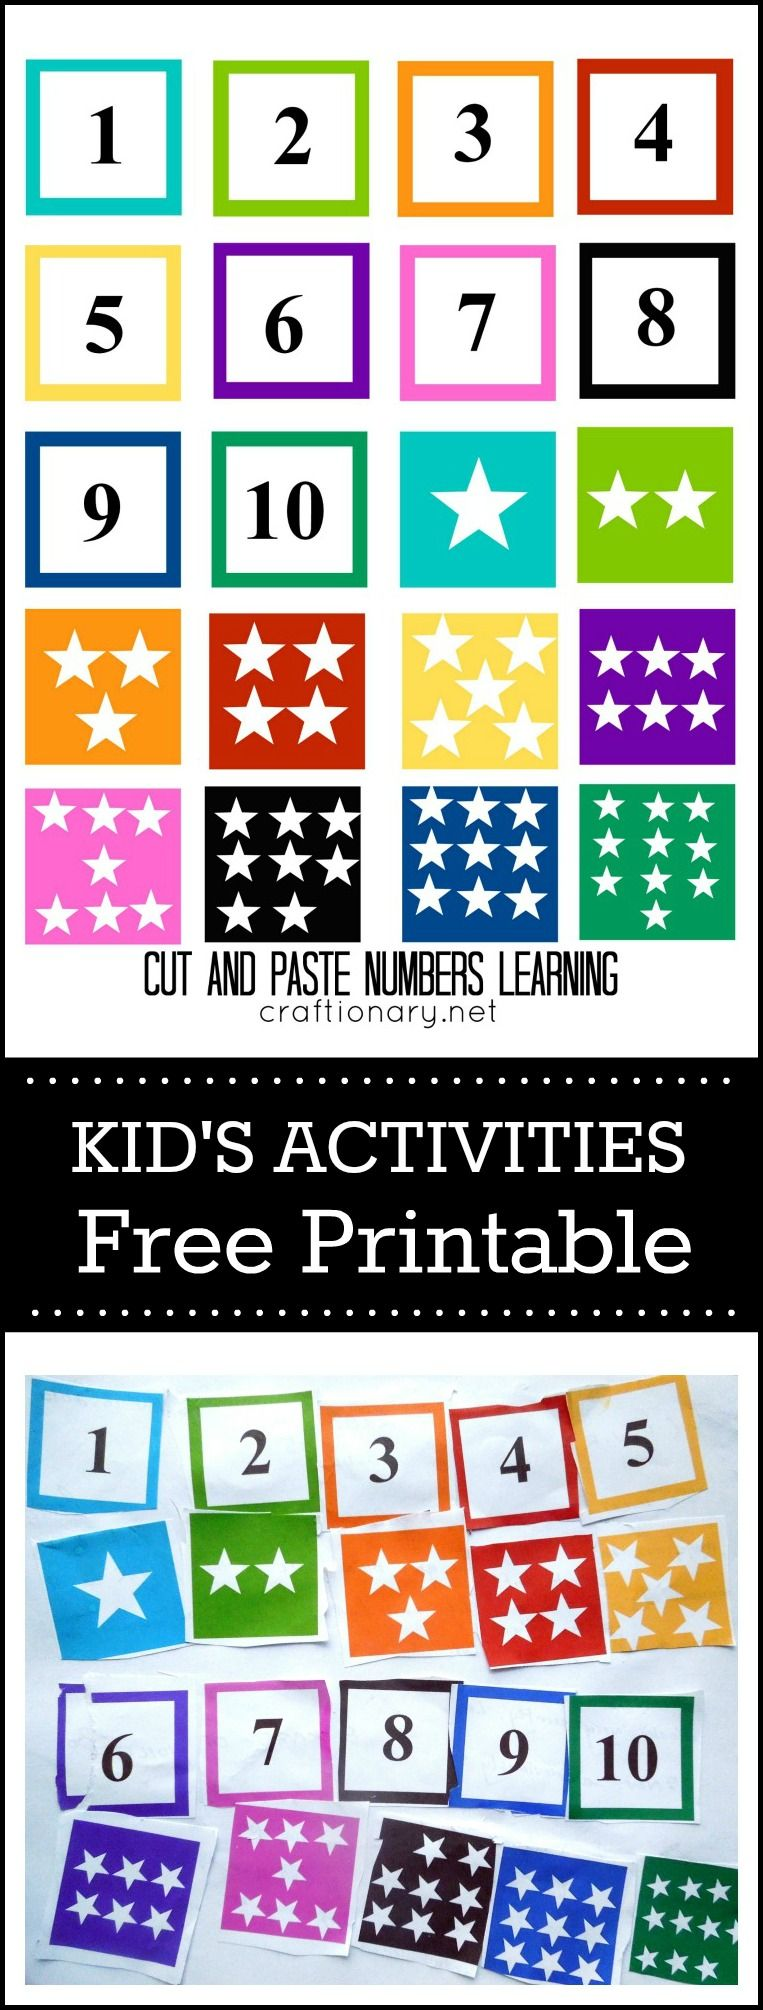 Printable color matching games for preschoolers - Activities For Toddlers